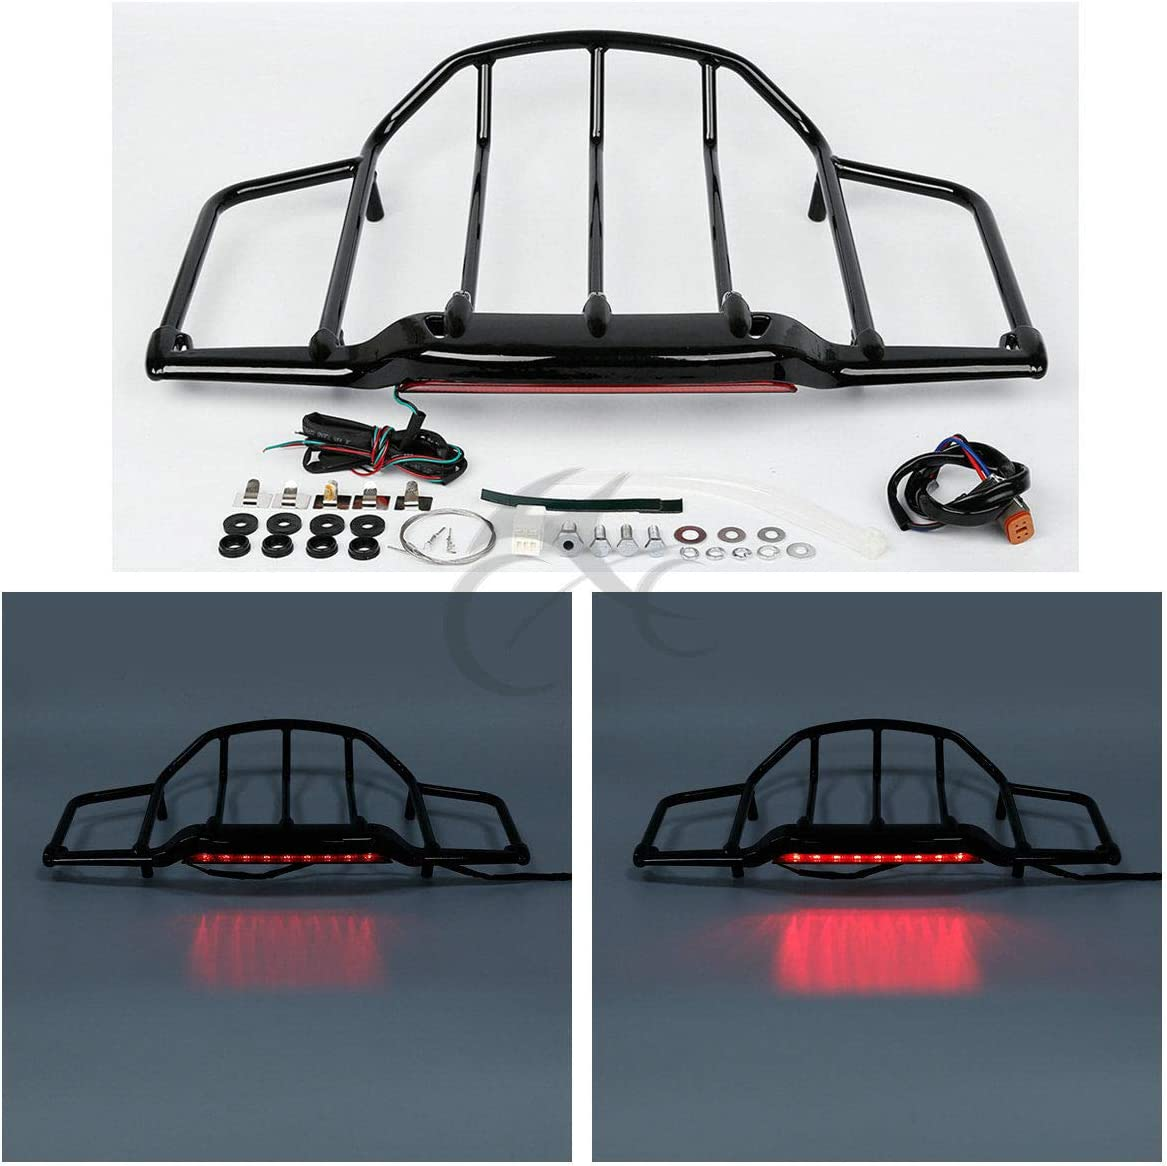 TCT-MT Luggage Rack With LED Light For Harley Air Wing Tour Pak Trunk Pack Touring FLH FLHX FLHR FLTR 1993-2013 Electra Glide Classic FLHTC Black 12